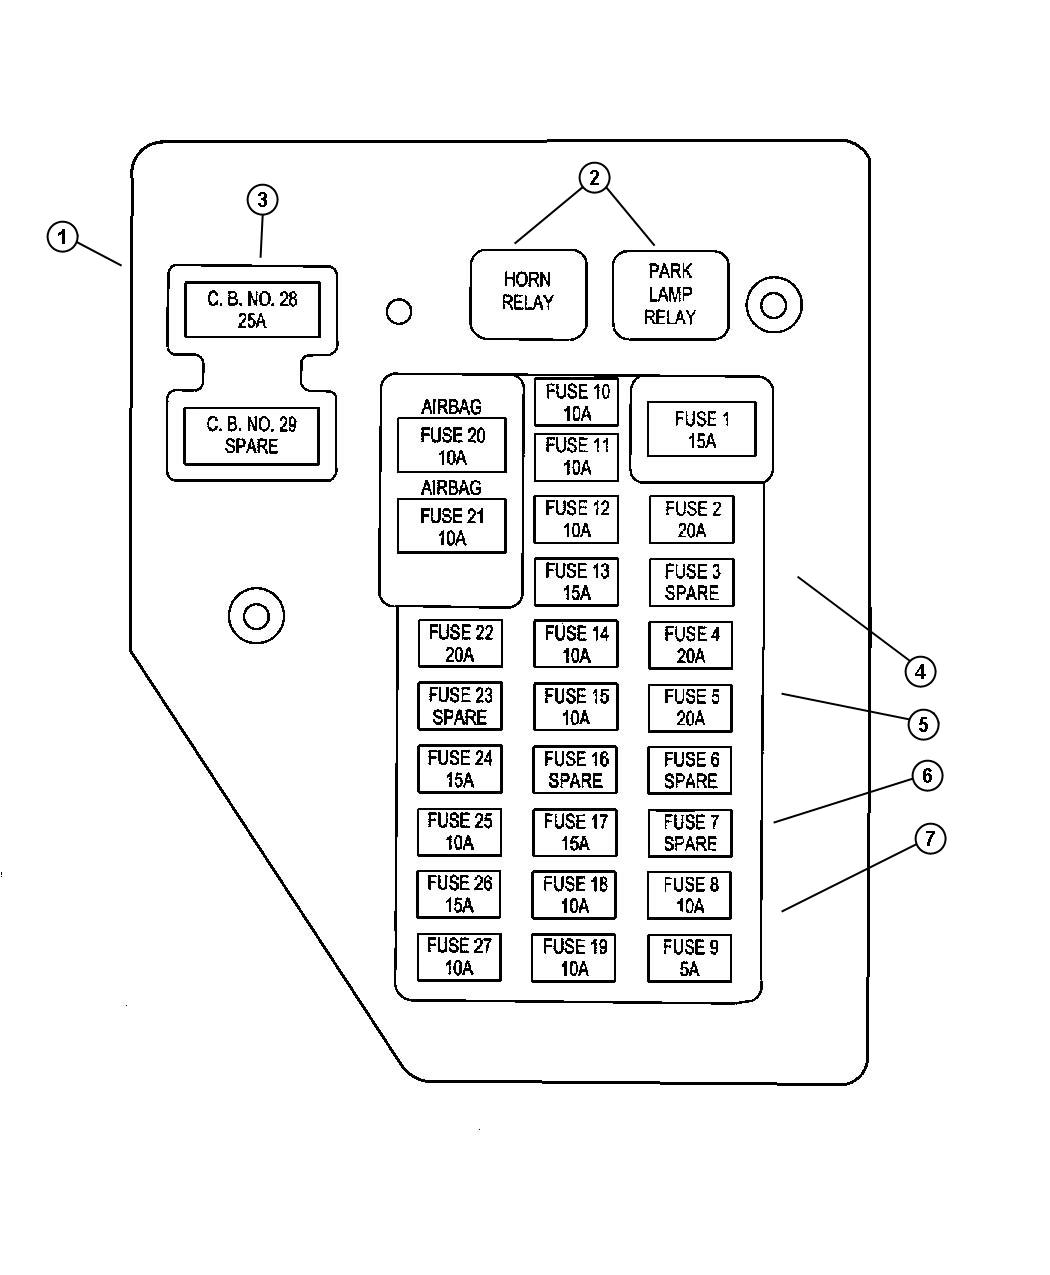 hight resolution of 1997 dodge ram fuse box diagram wiring diagram inside fuse box location on 1997 dodge ram2500